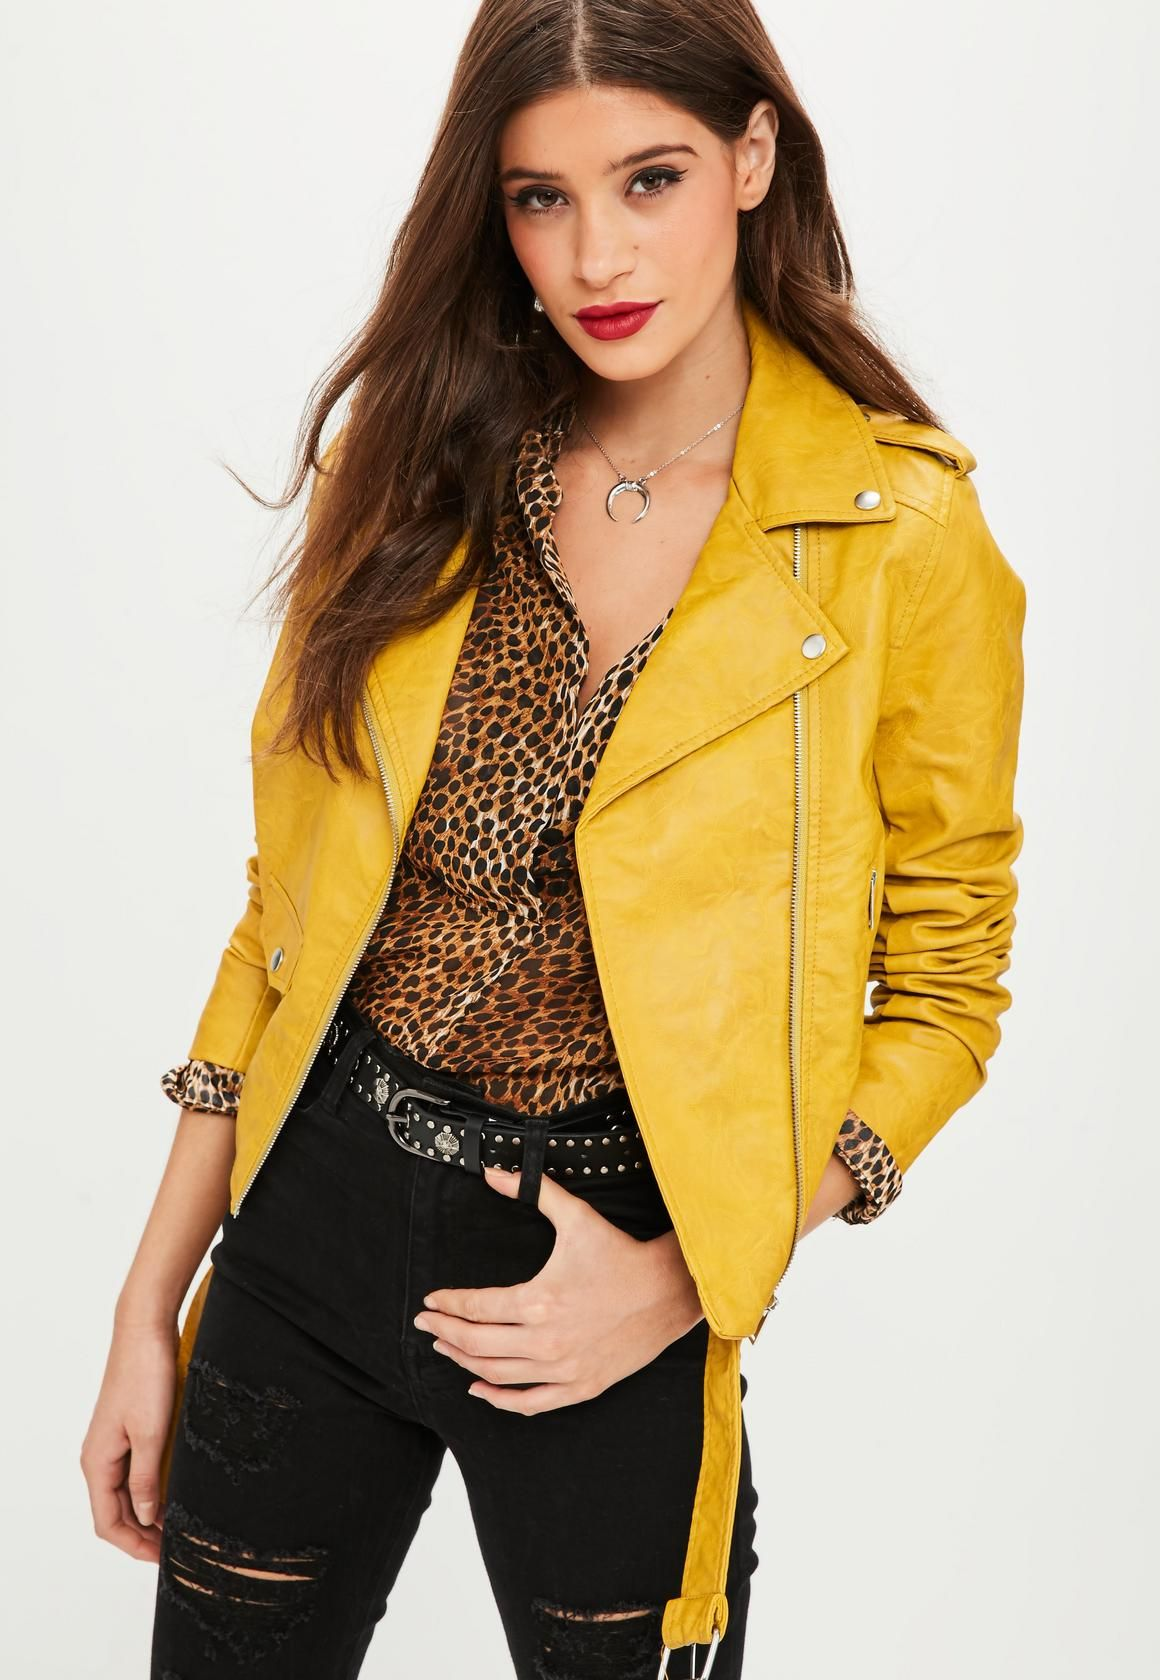 this jacket features in a faux leather and a yellow hue